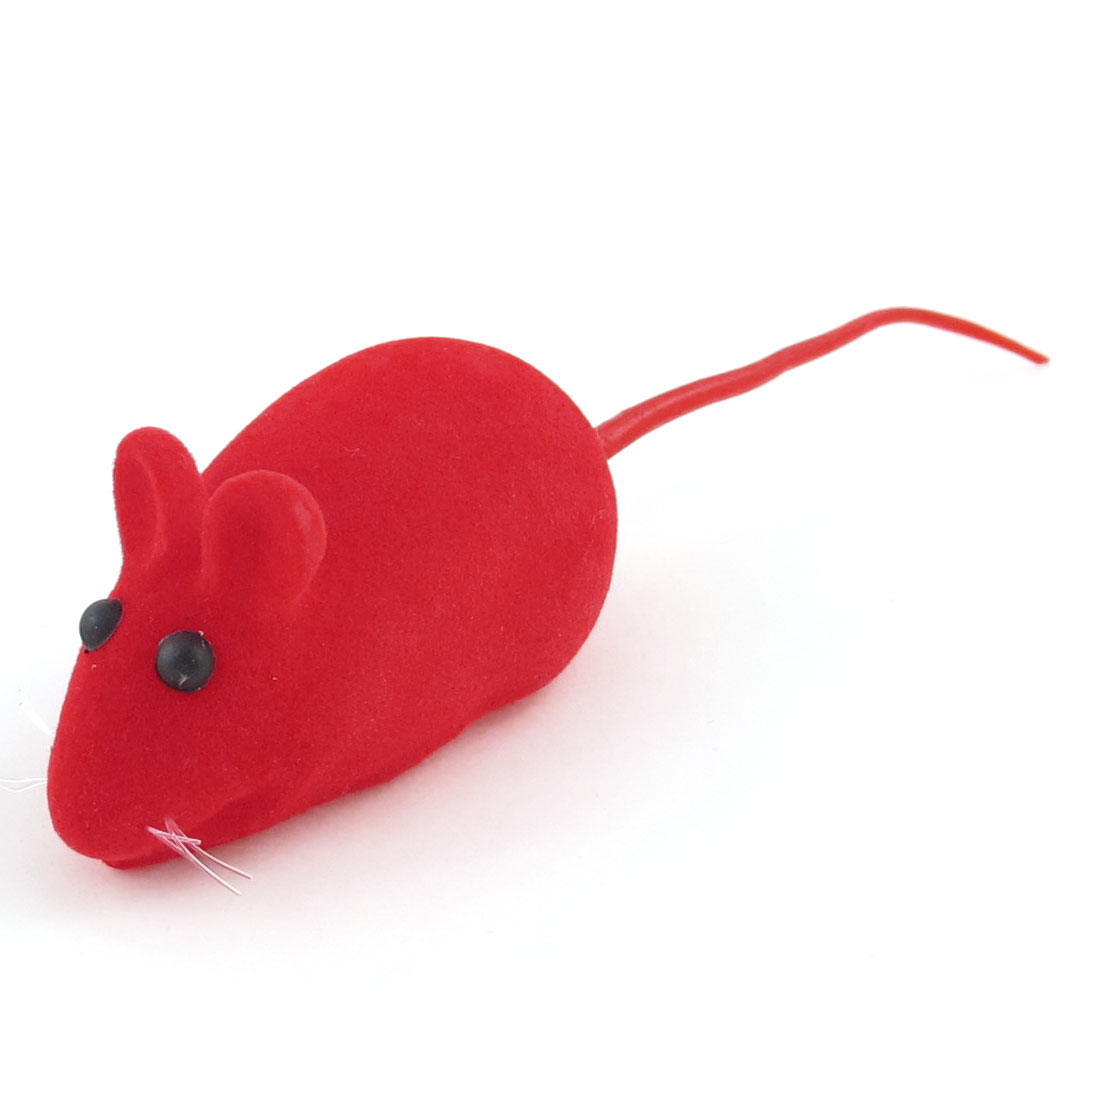 Red Mouse Shape Black Eyes Squeaky Chew Toy for Pet Dog